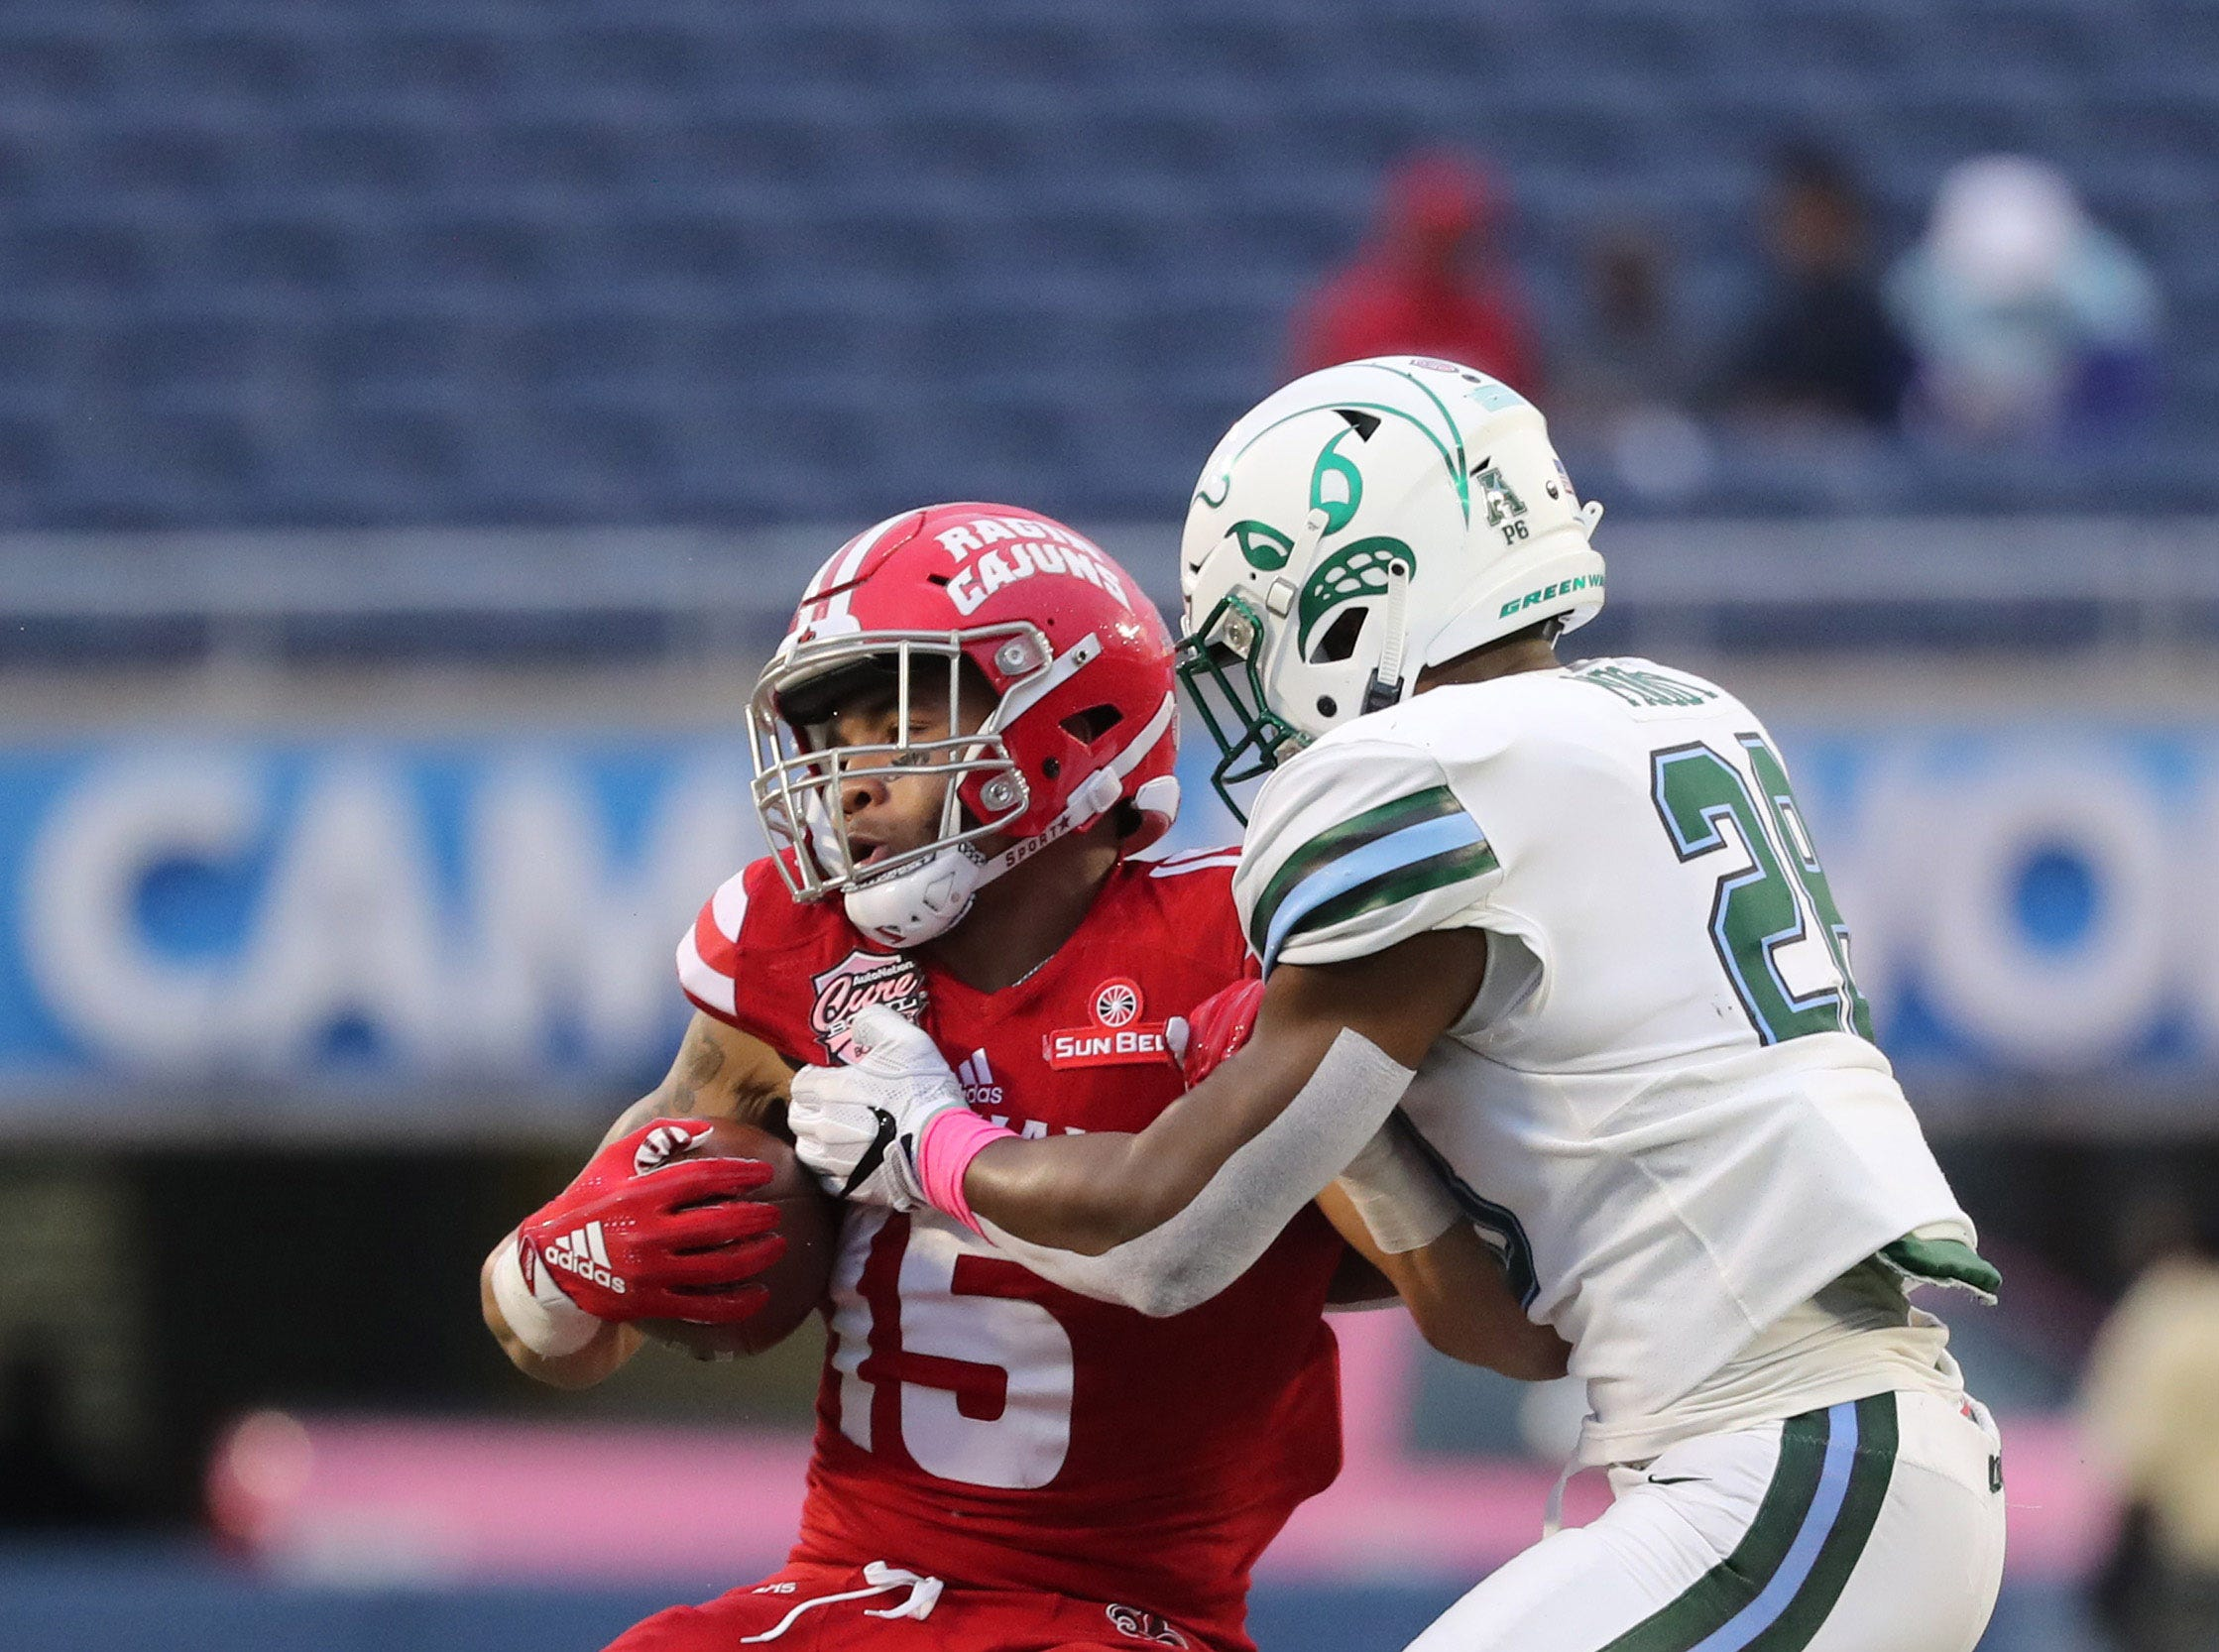 Dec 15, 2018; Orlando, FL, USA; Tulane Green Wave linebacker Marvin Moody (28)  tackles Louisiana-Lafayette Ragin Cajuns running back Elijah Mitchell (15) during the second half at Camping World Stadium. Mandatory Credit: Kim Klement-USA TODAY Sports